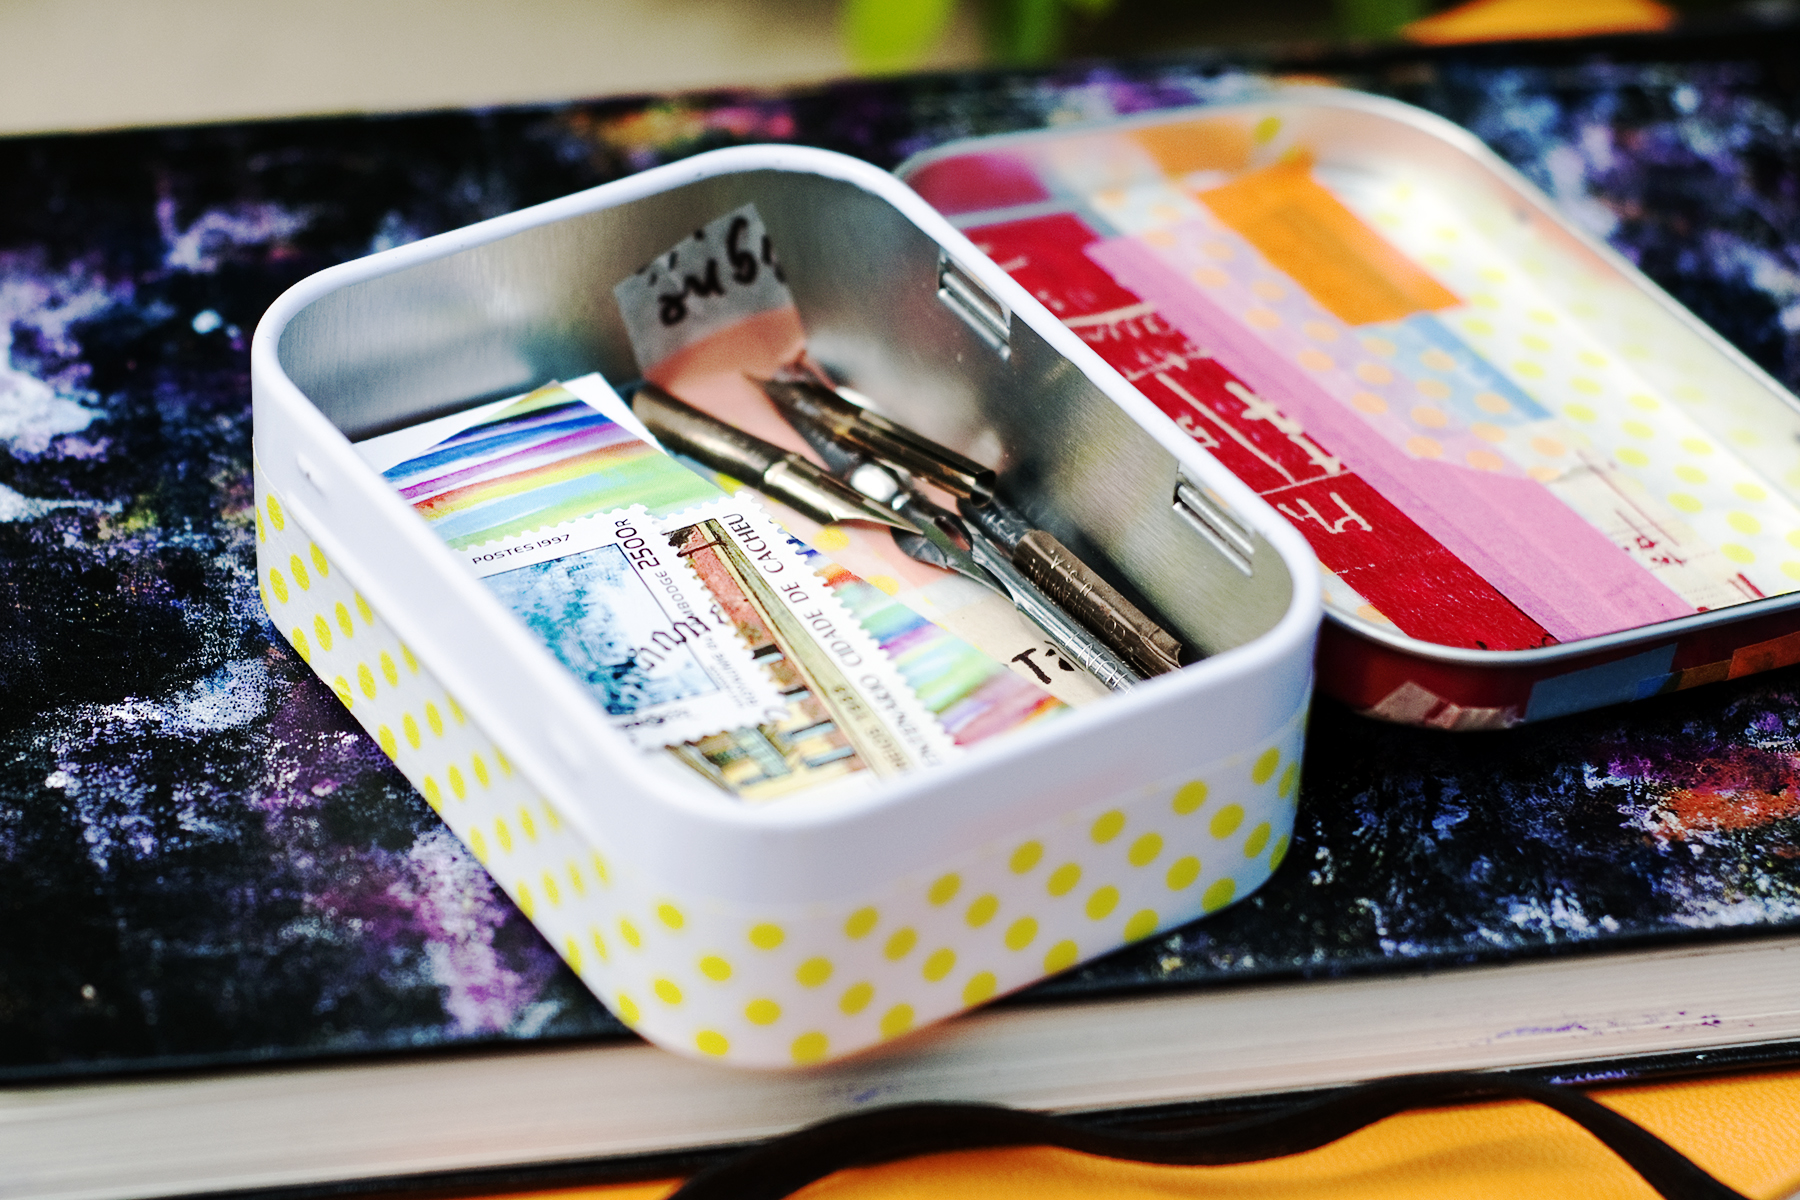 Decorating Altoid tins with washi tape.